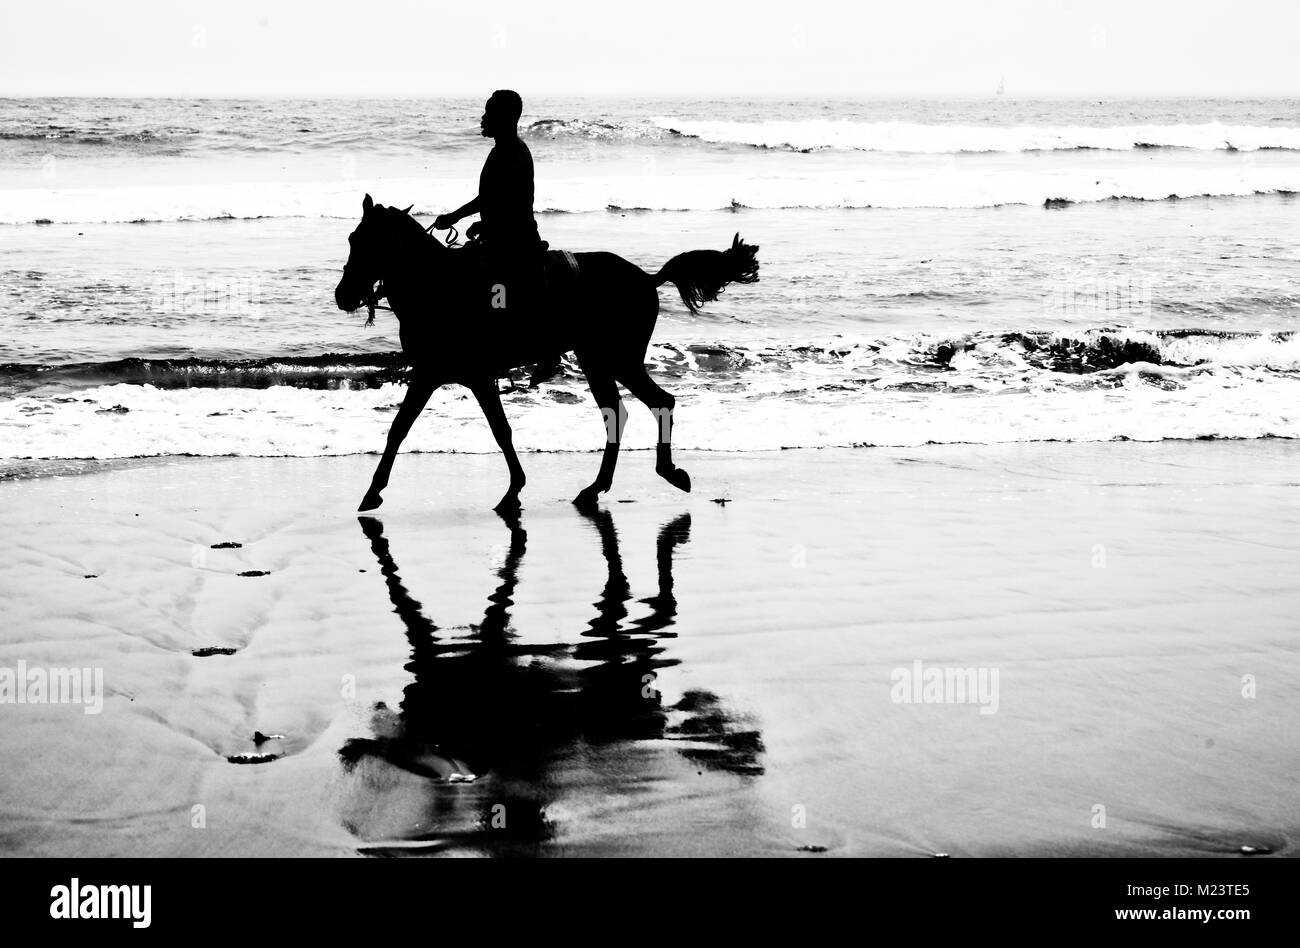 Horseback riding in Ghana - Stock Image